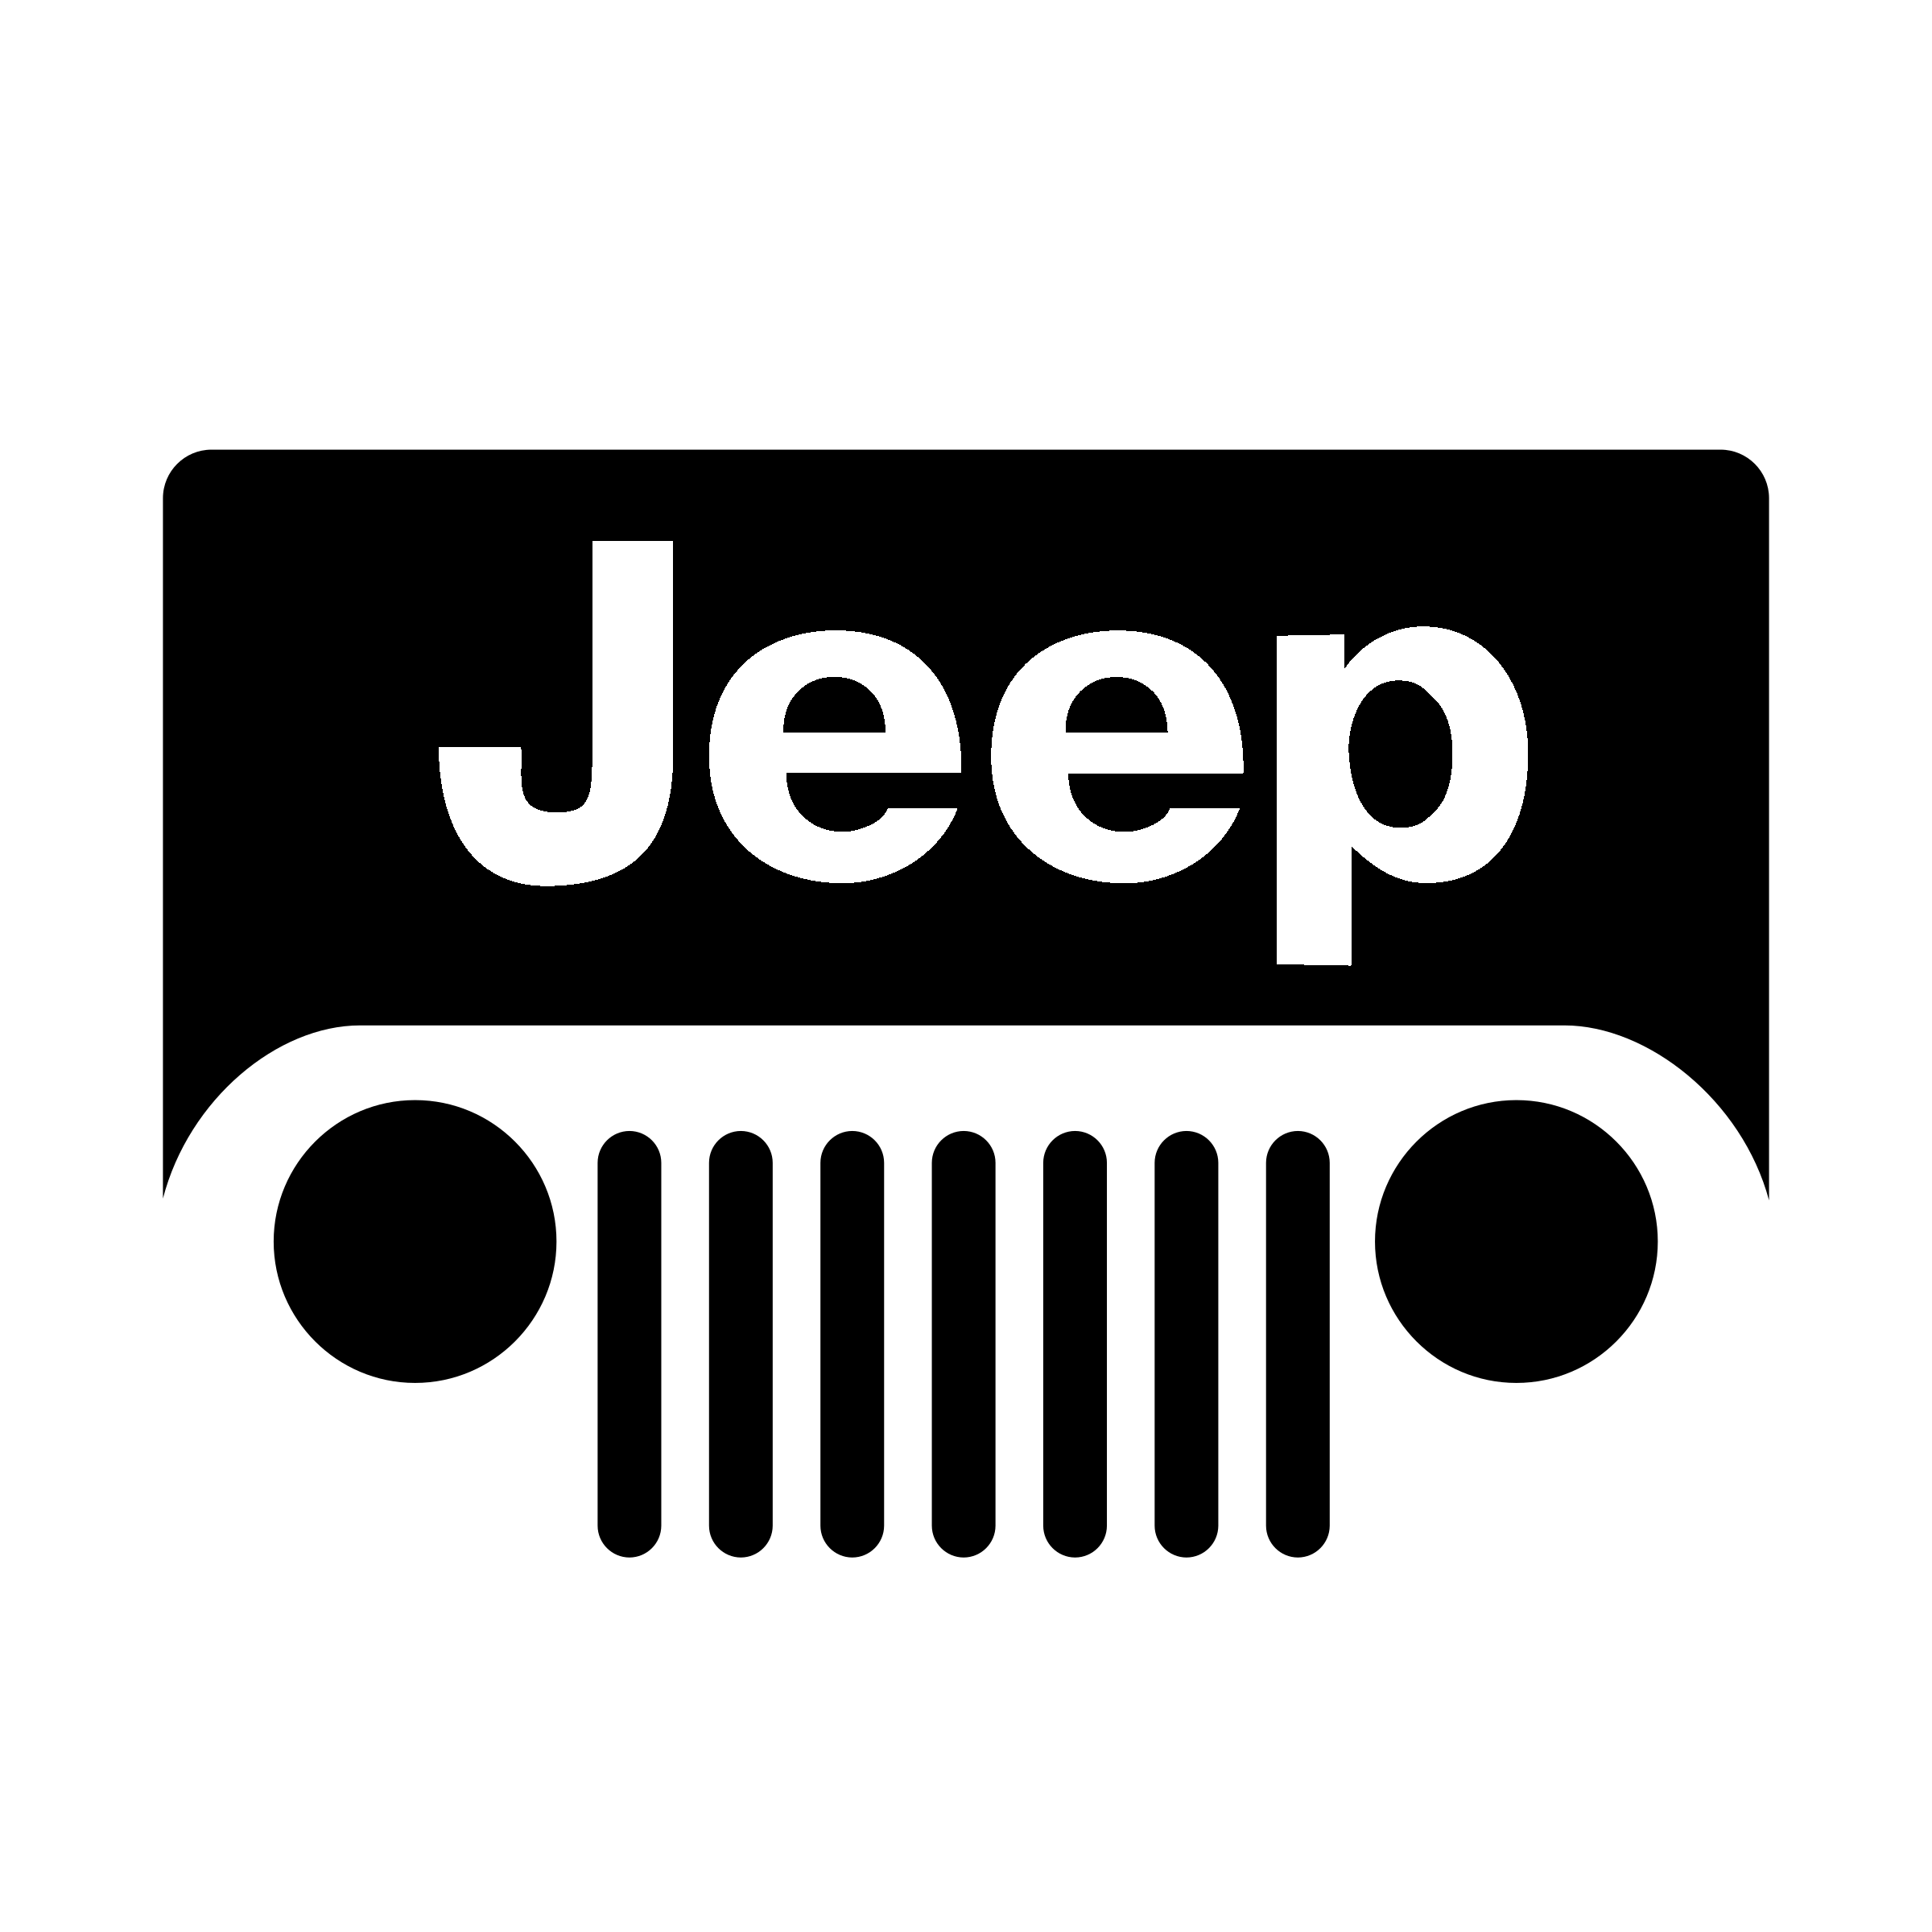 Jeep Logo PNG Transparent & SVG Vector.